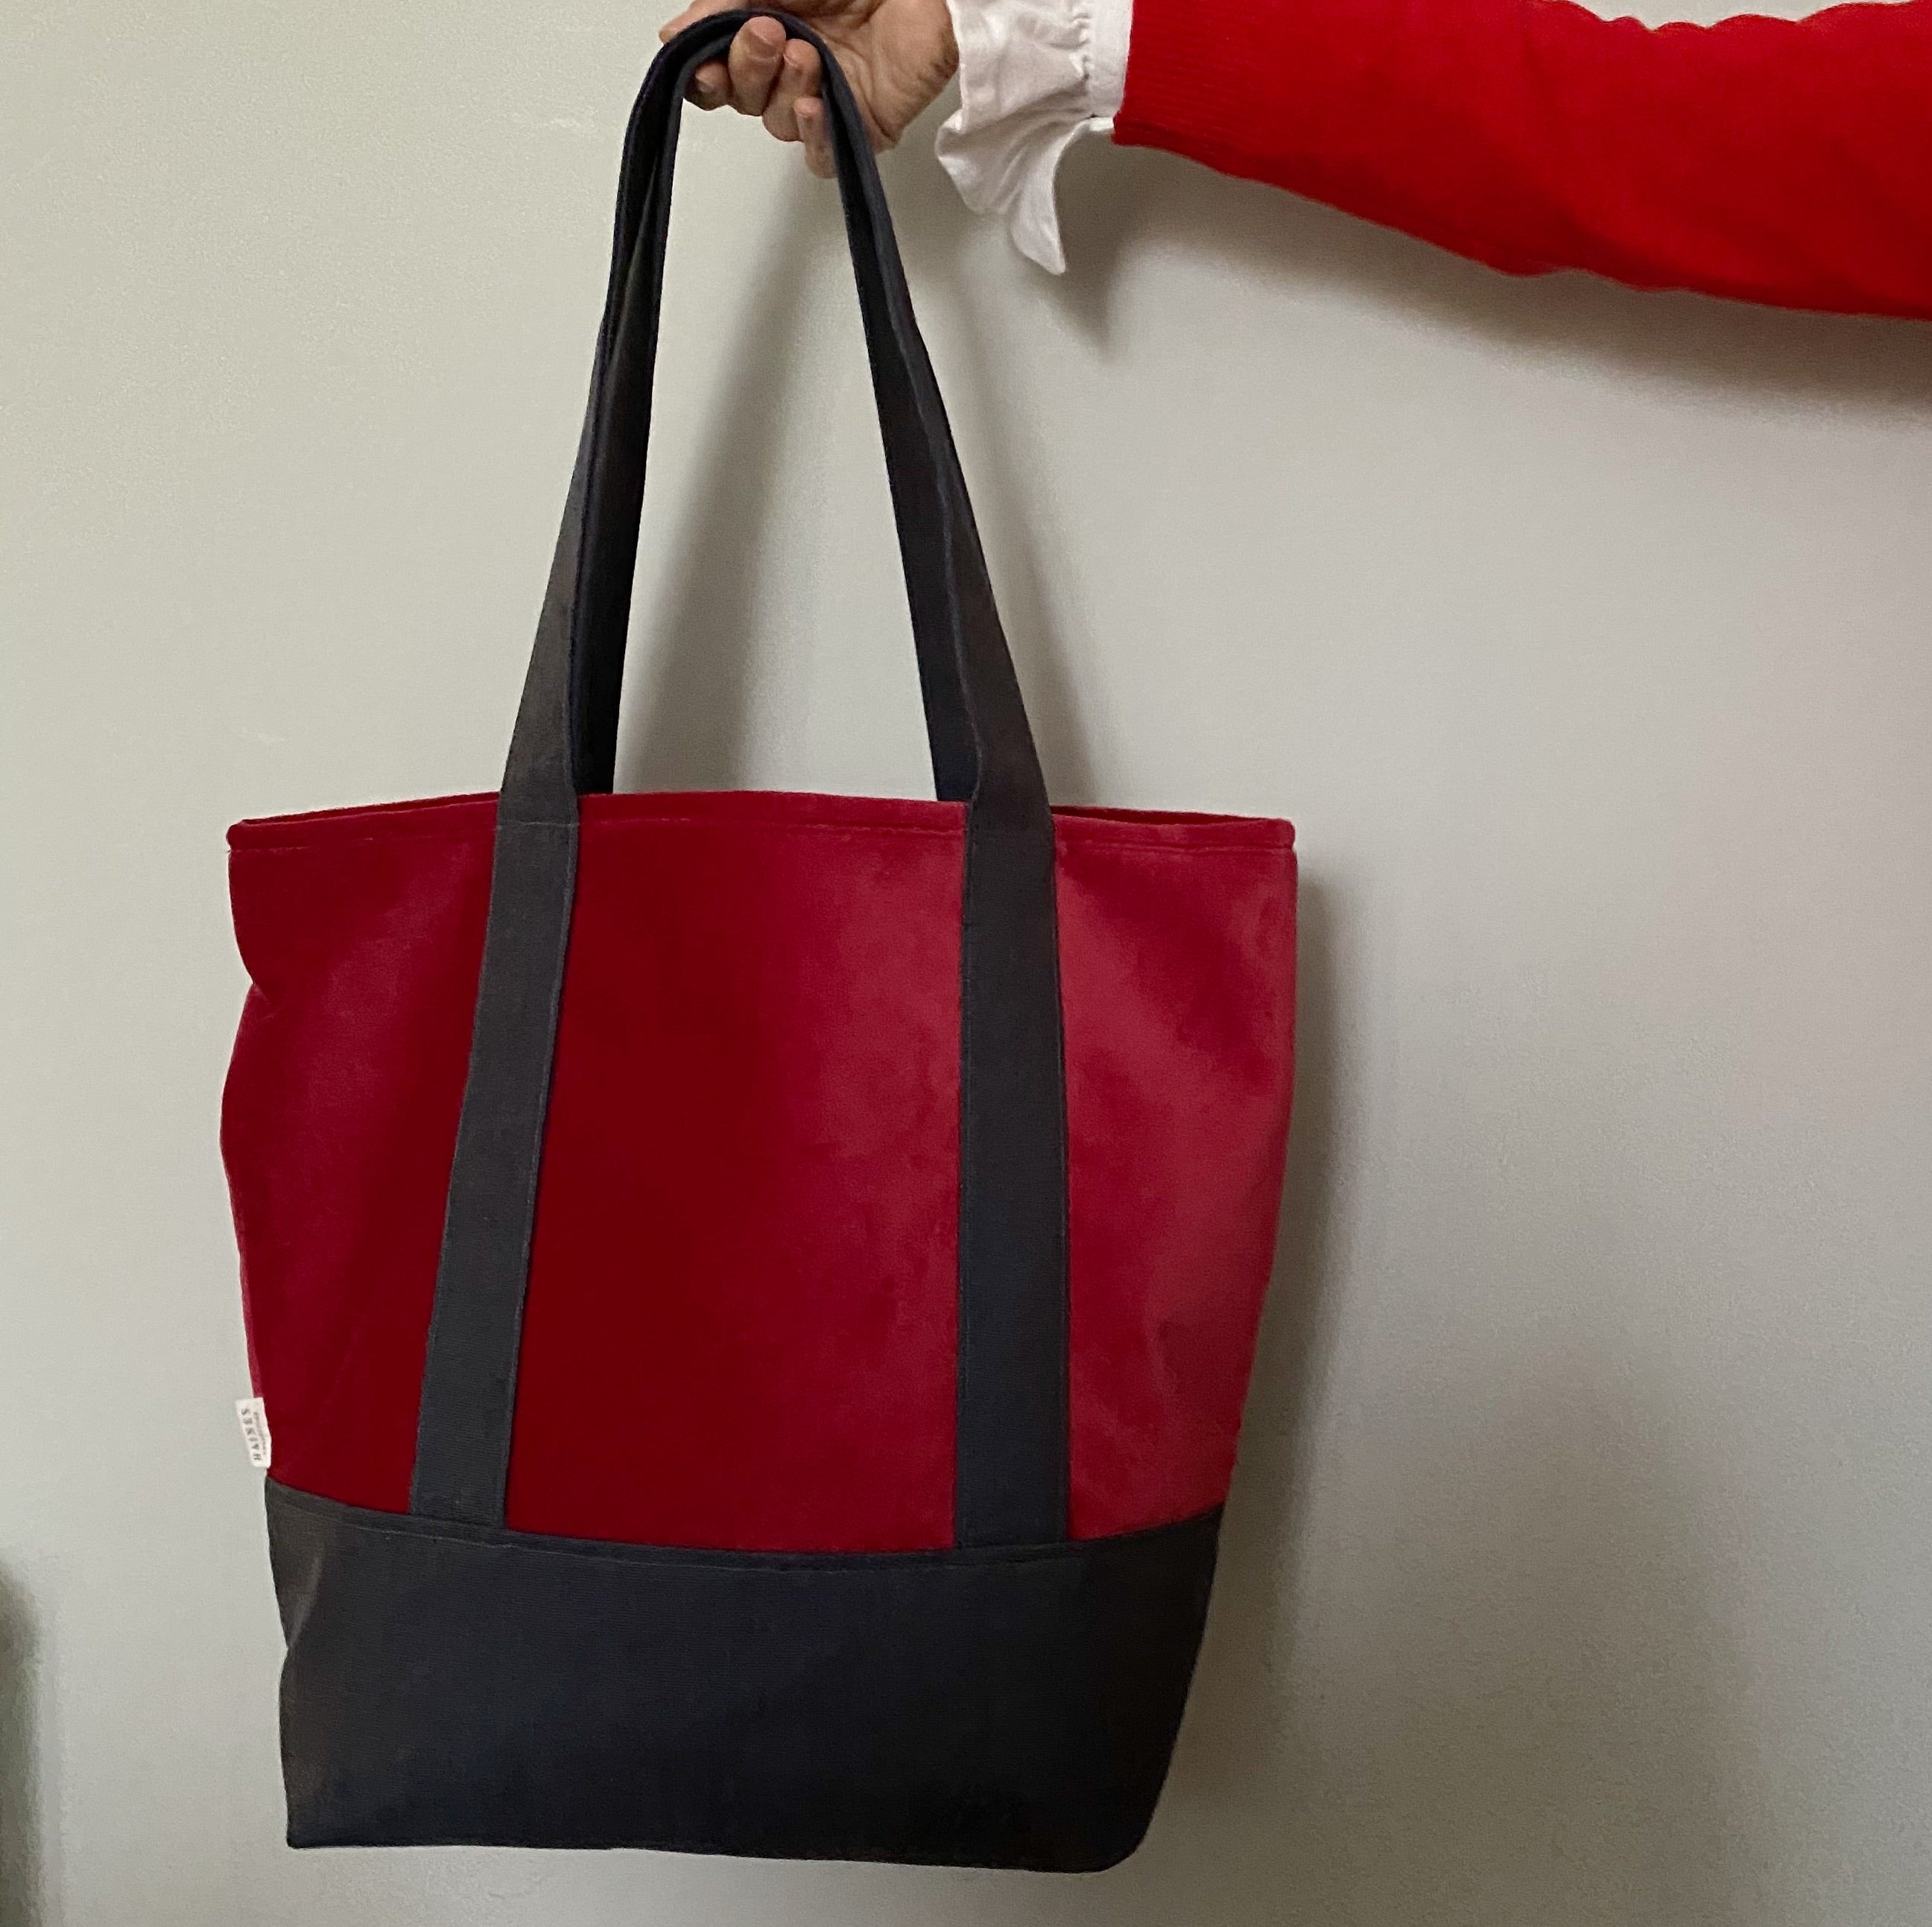 Velvet and Wool Tote Bag - Red